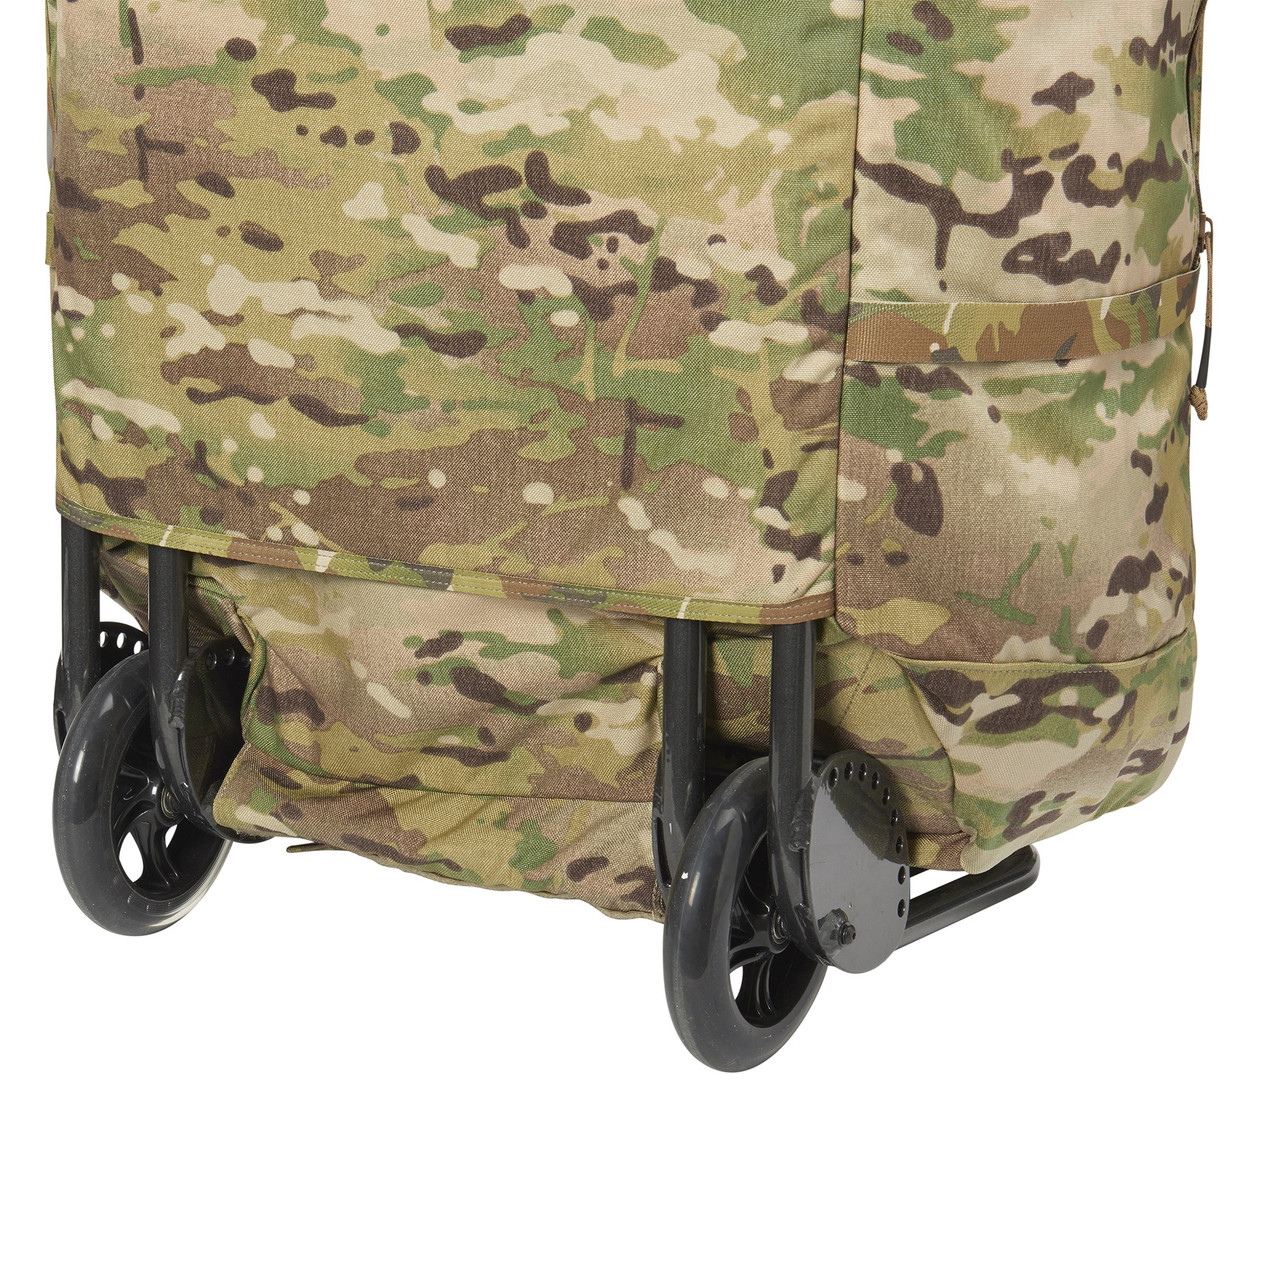 Kelty BRT USA rolling trunk,  multicam colorway, closeup of wheels